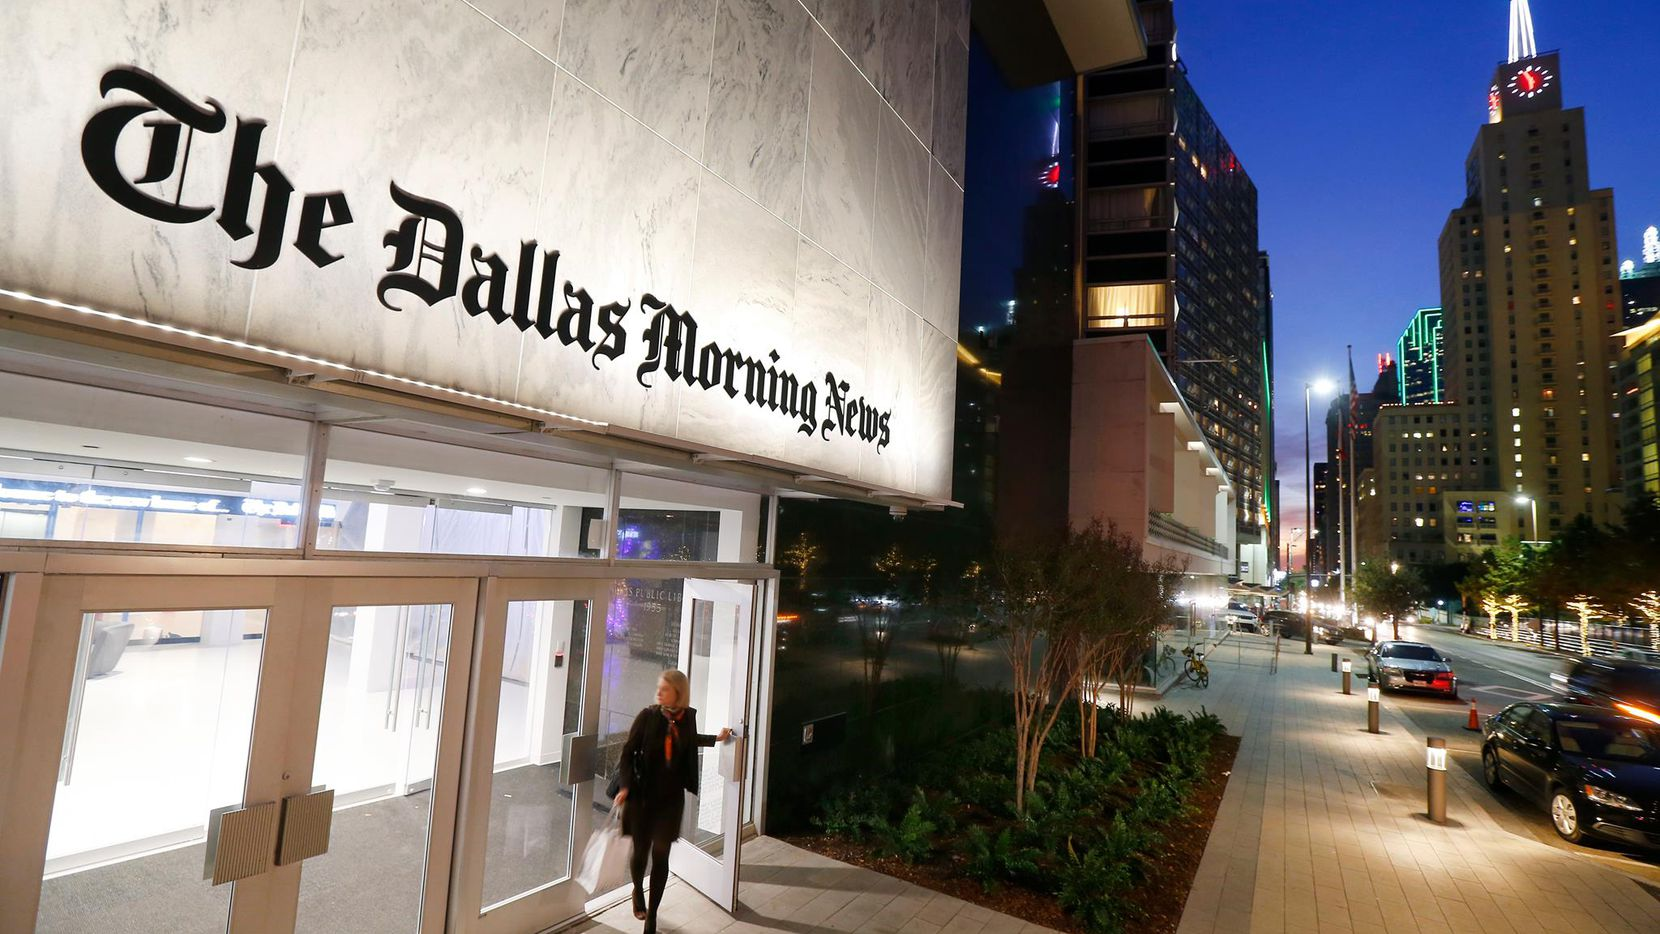 A number of changes will kick off this week in the print editions of The Dallas Morning News.